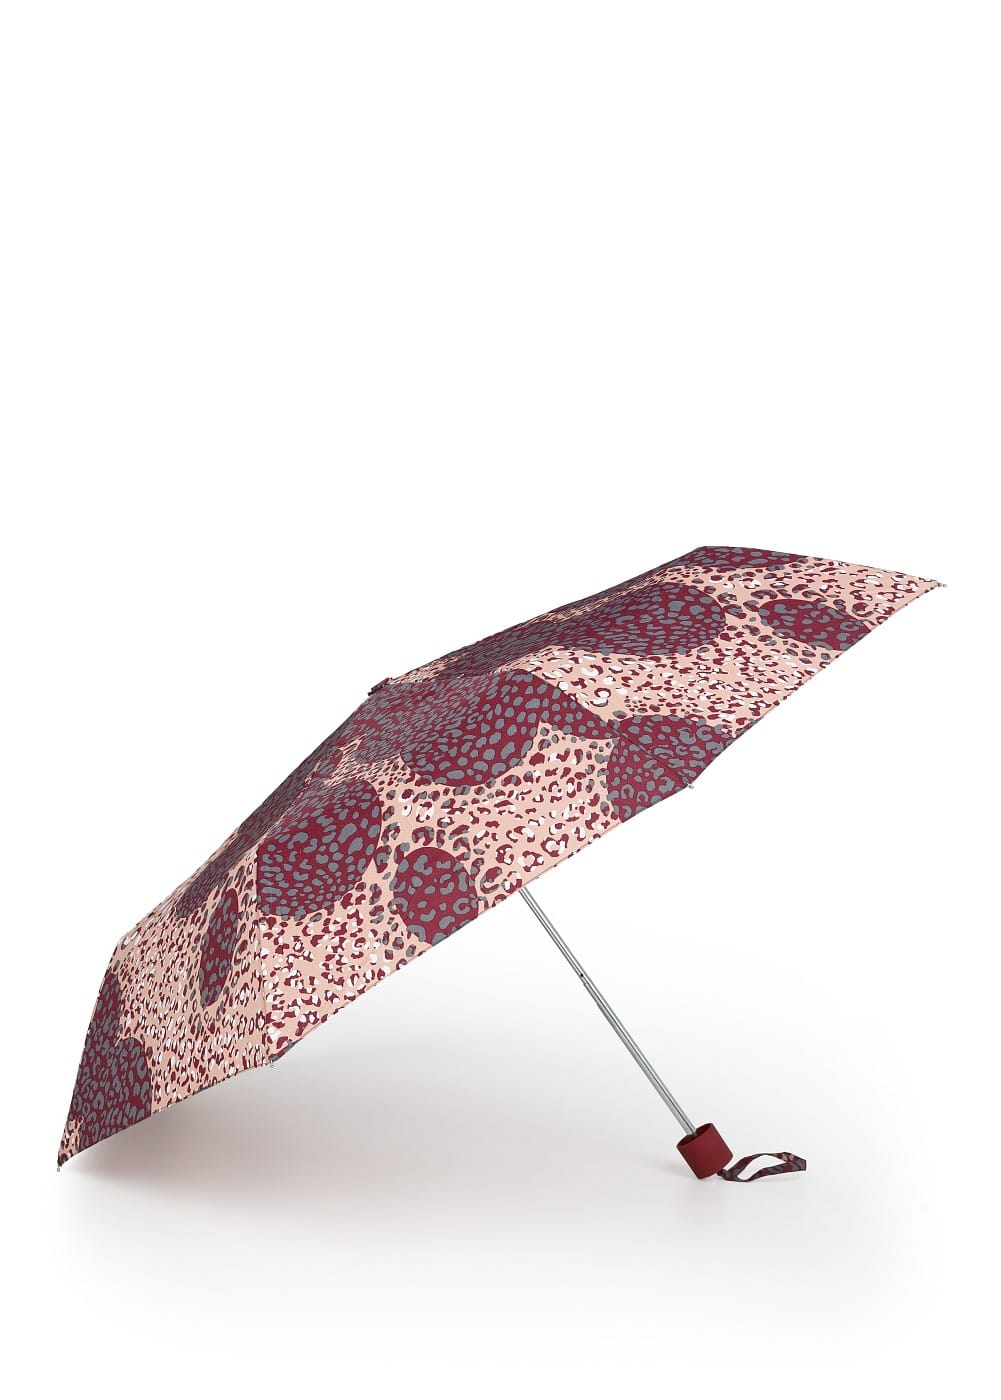 Multicolor animal print umbrella